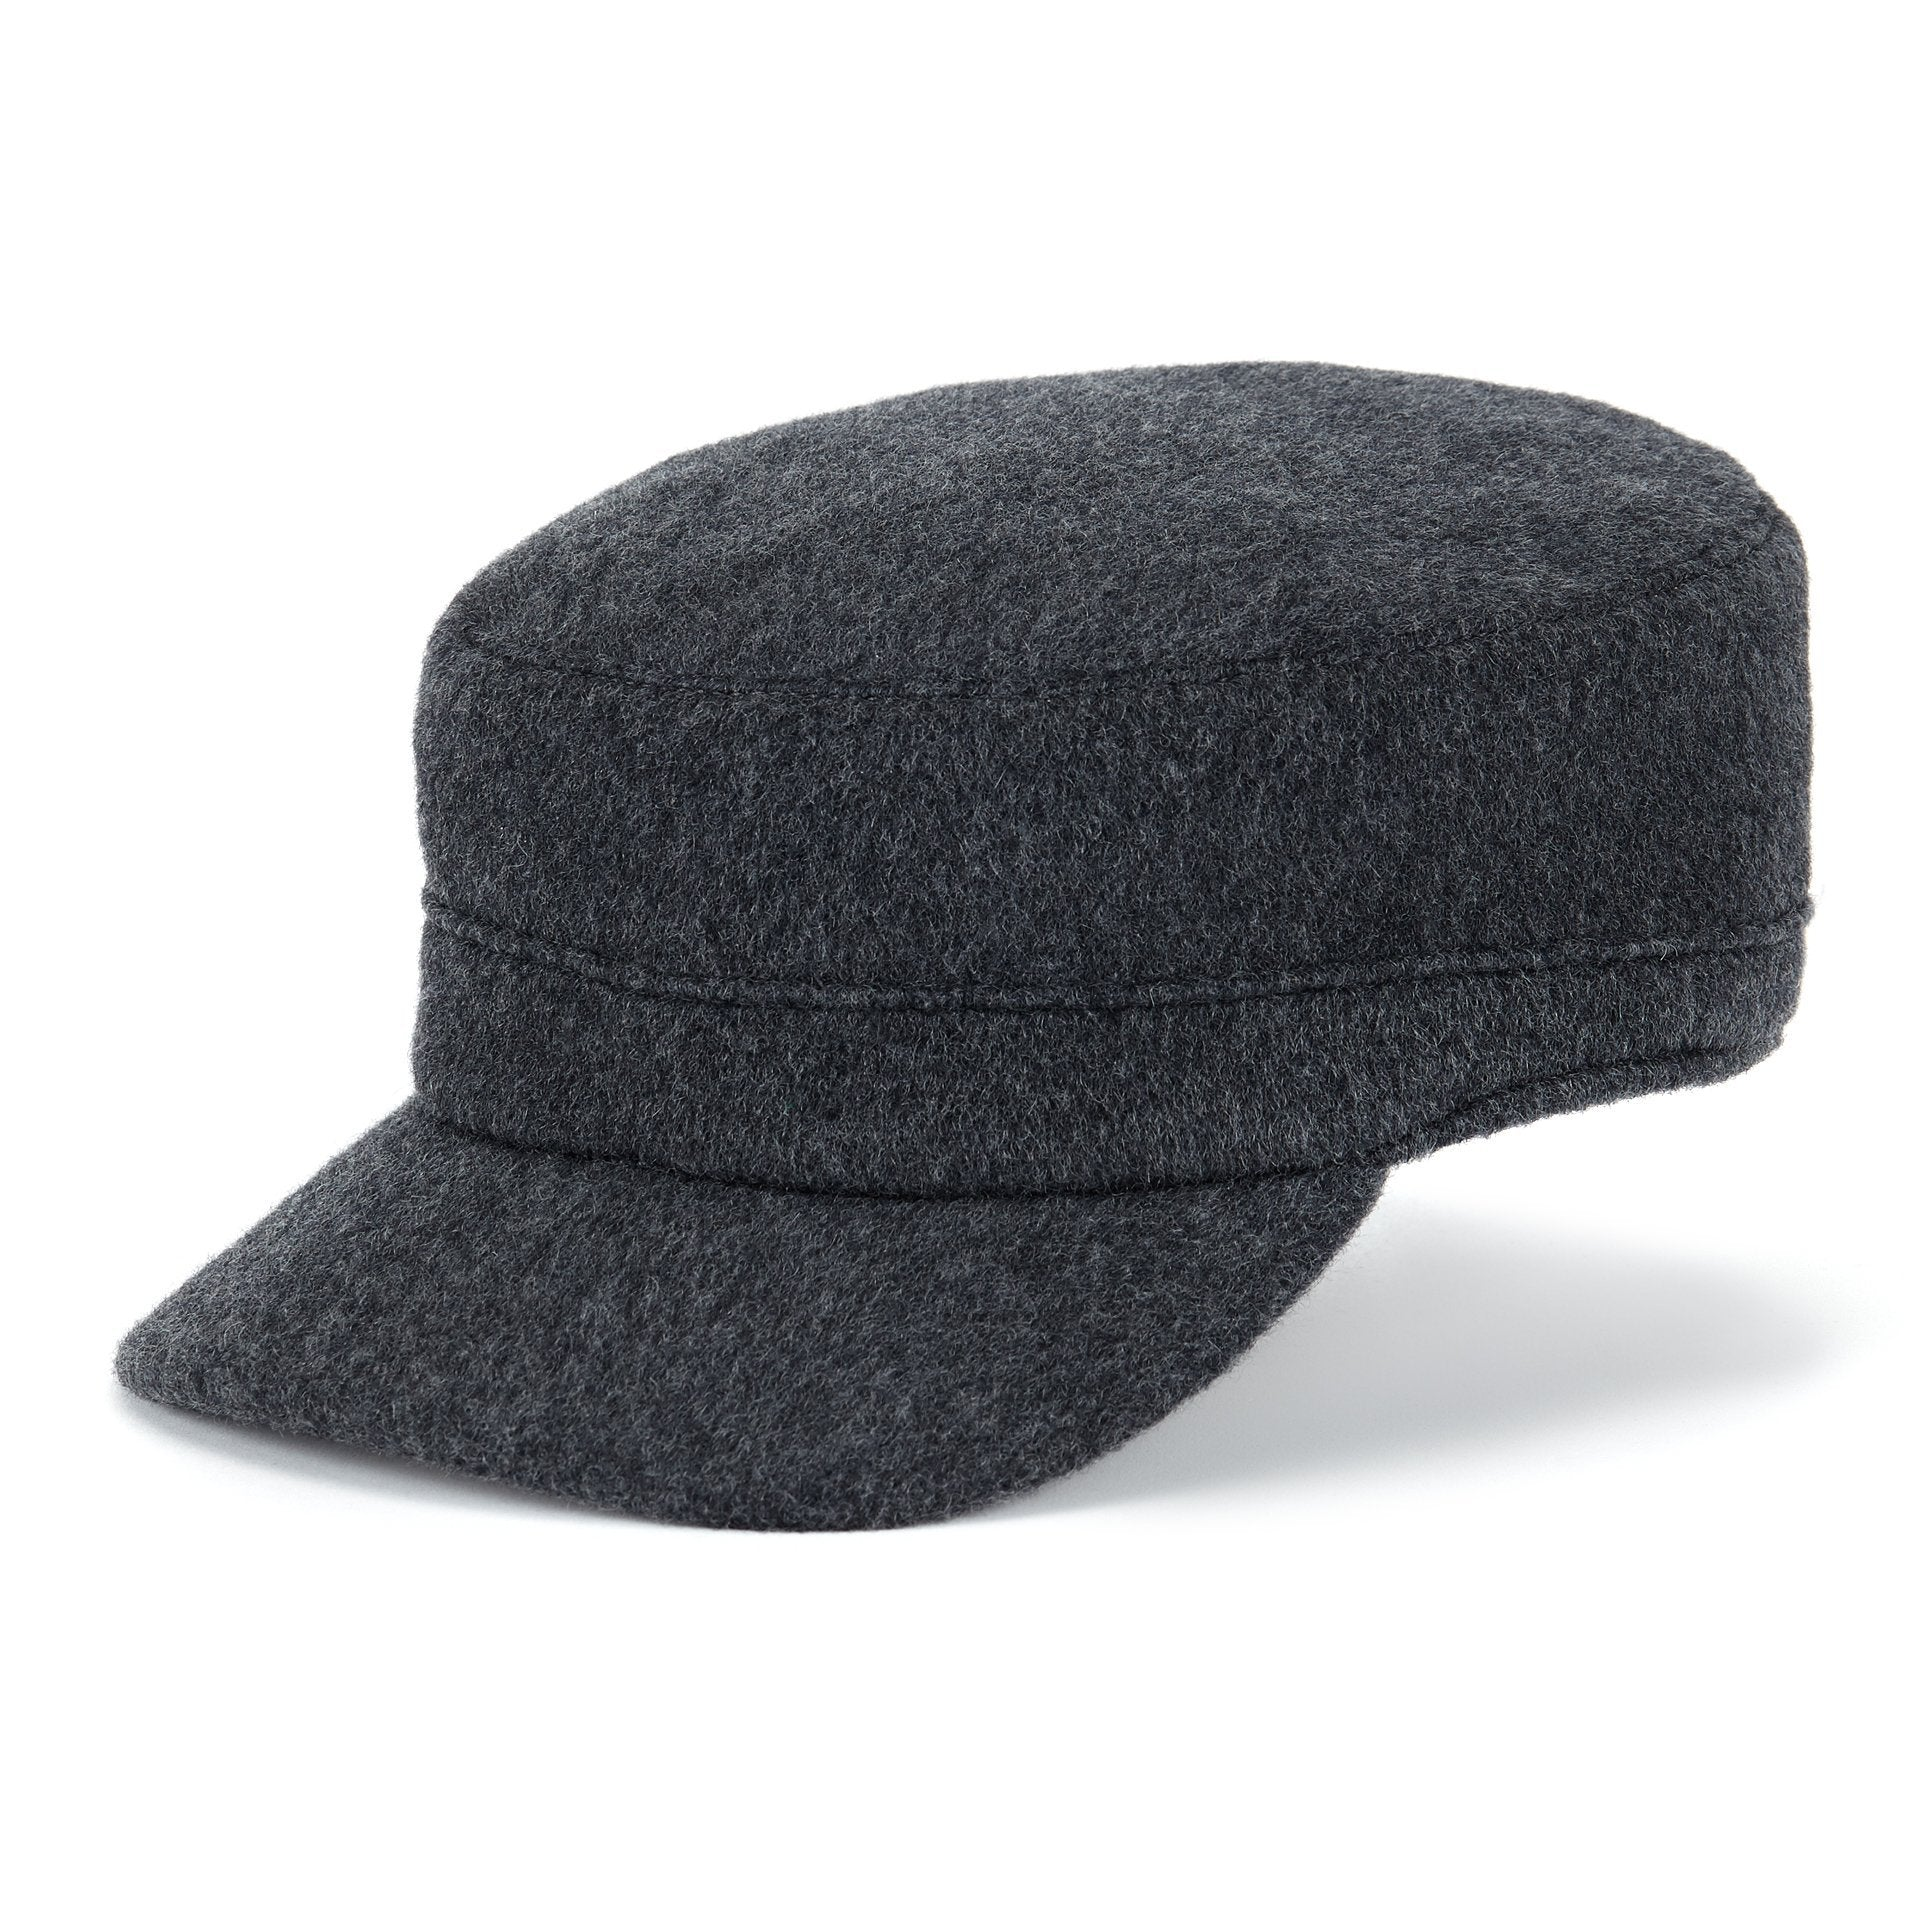 Helsinki cashmere cap - Baseball caps, engineer & watch caps - Lock & Co. Hatters London UK